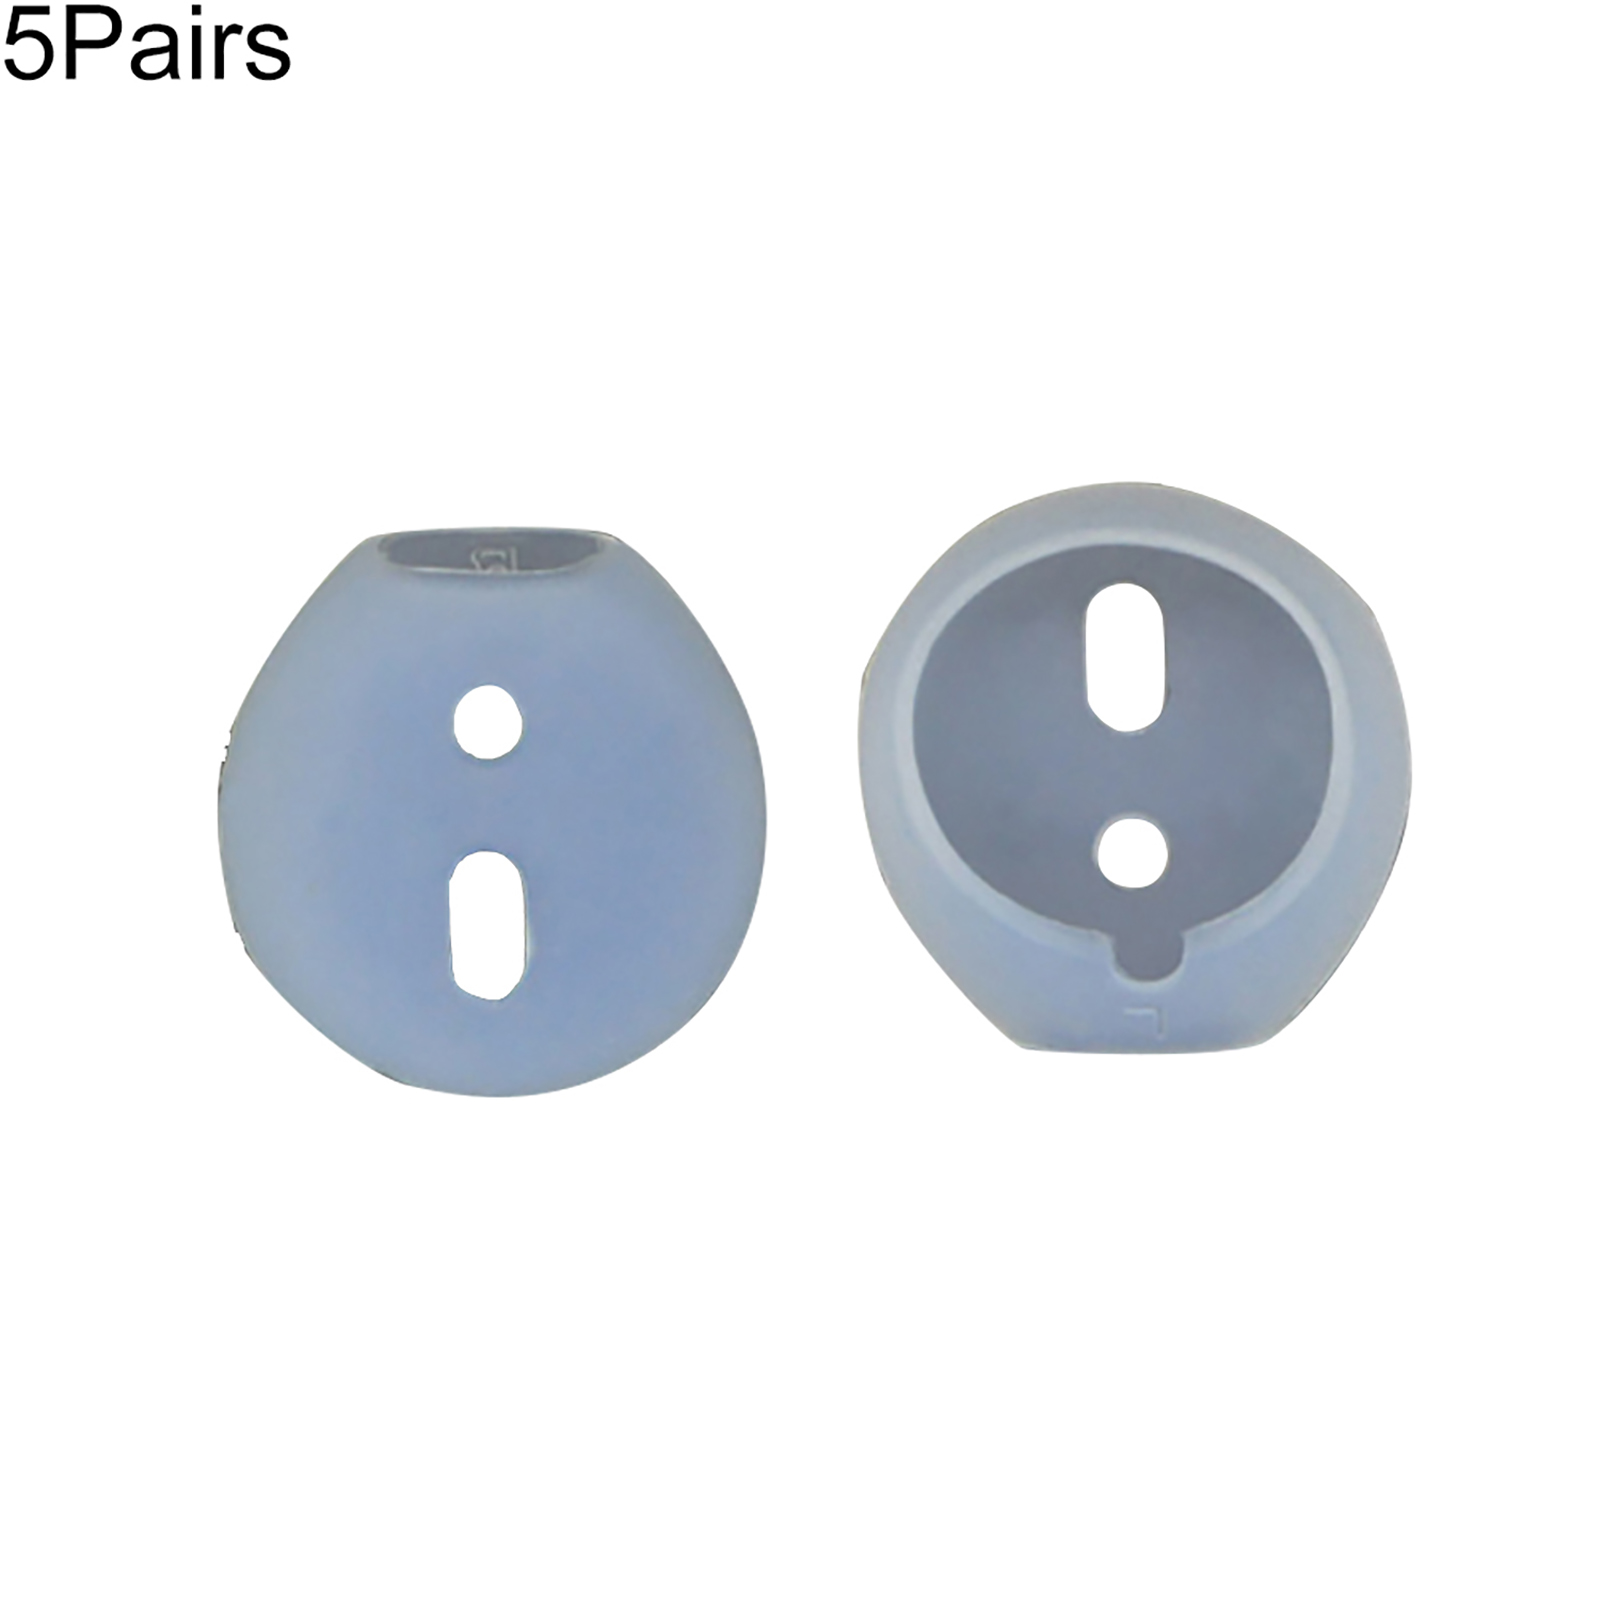 1-3-5-Pairs-Replacement-Silicone-Eartips-Anti-Lost-Earbud-Cover-For-Apple-Airpod thumbnail 20